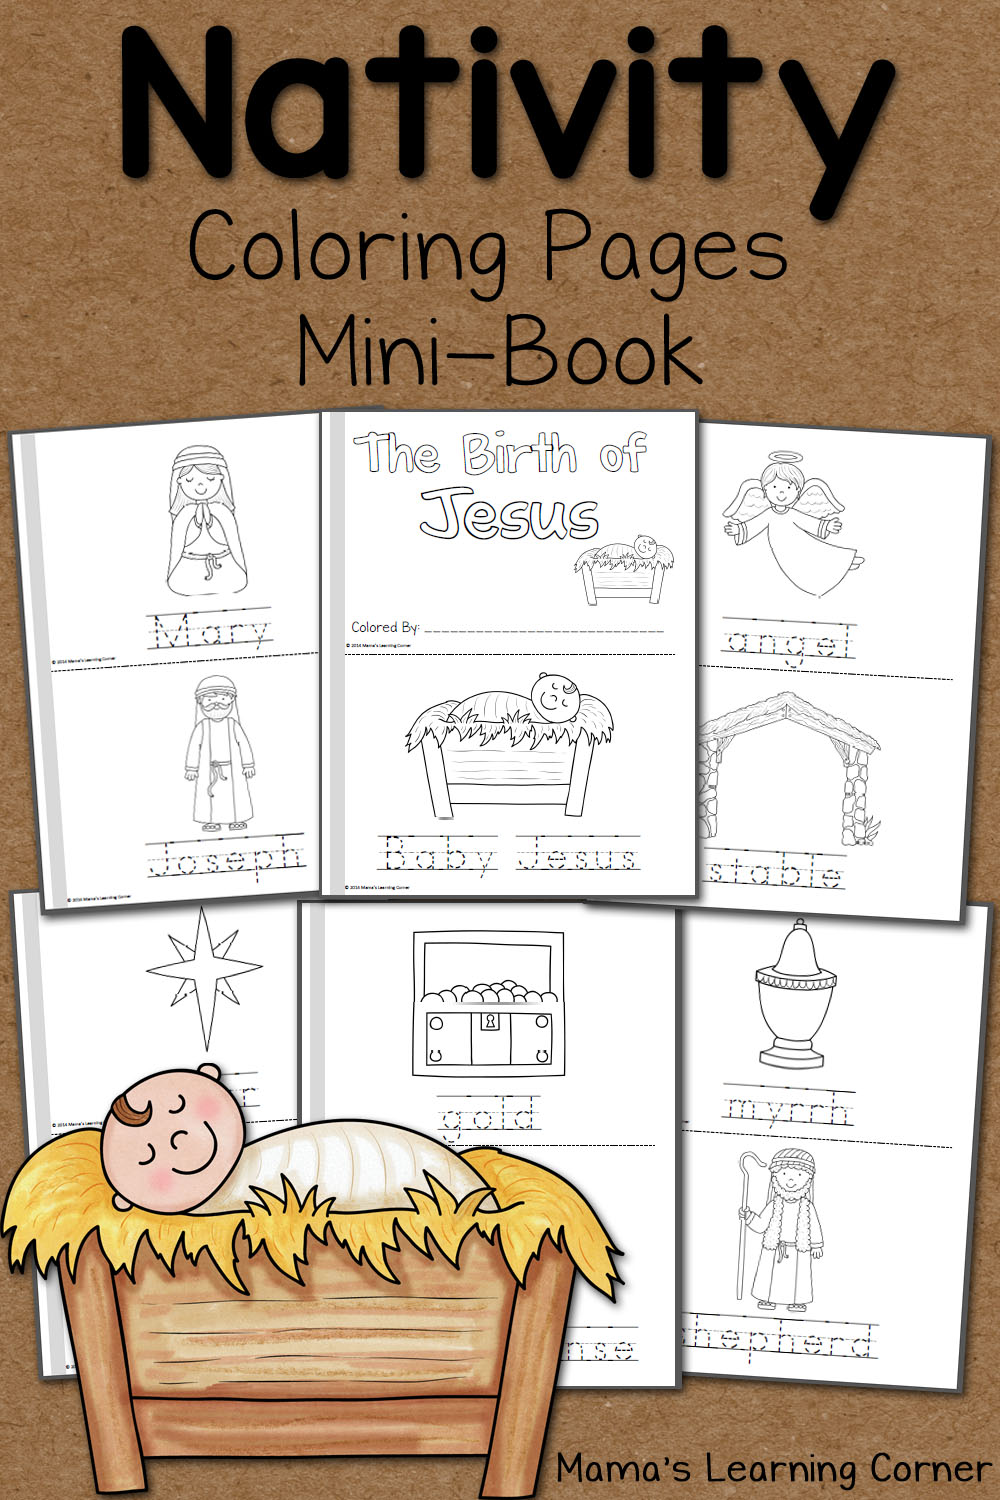 mini books coloring pages - photo#22